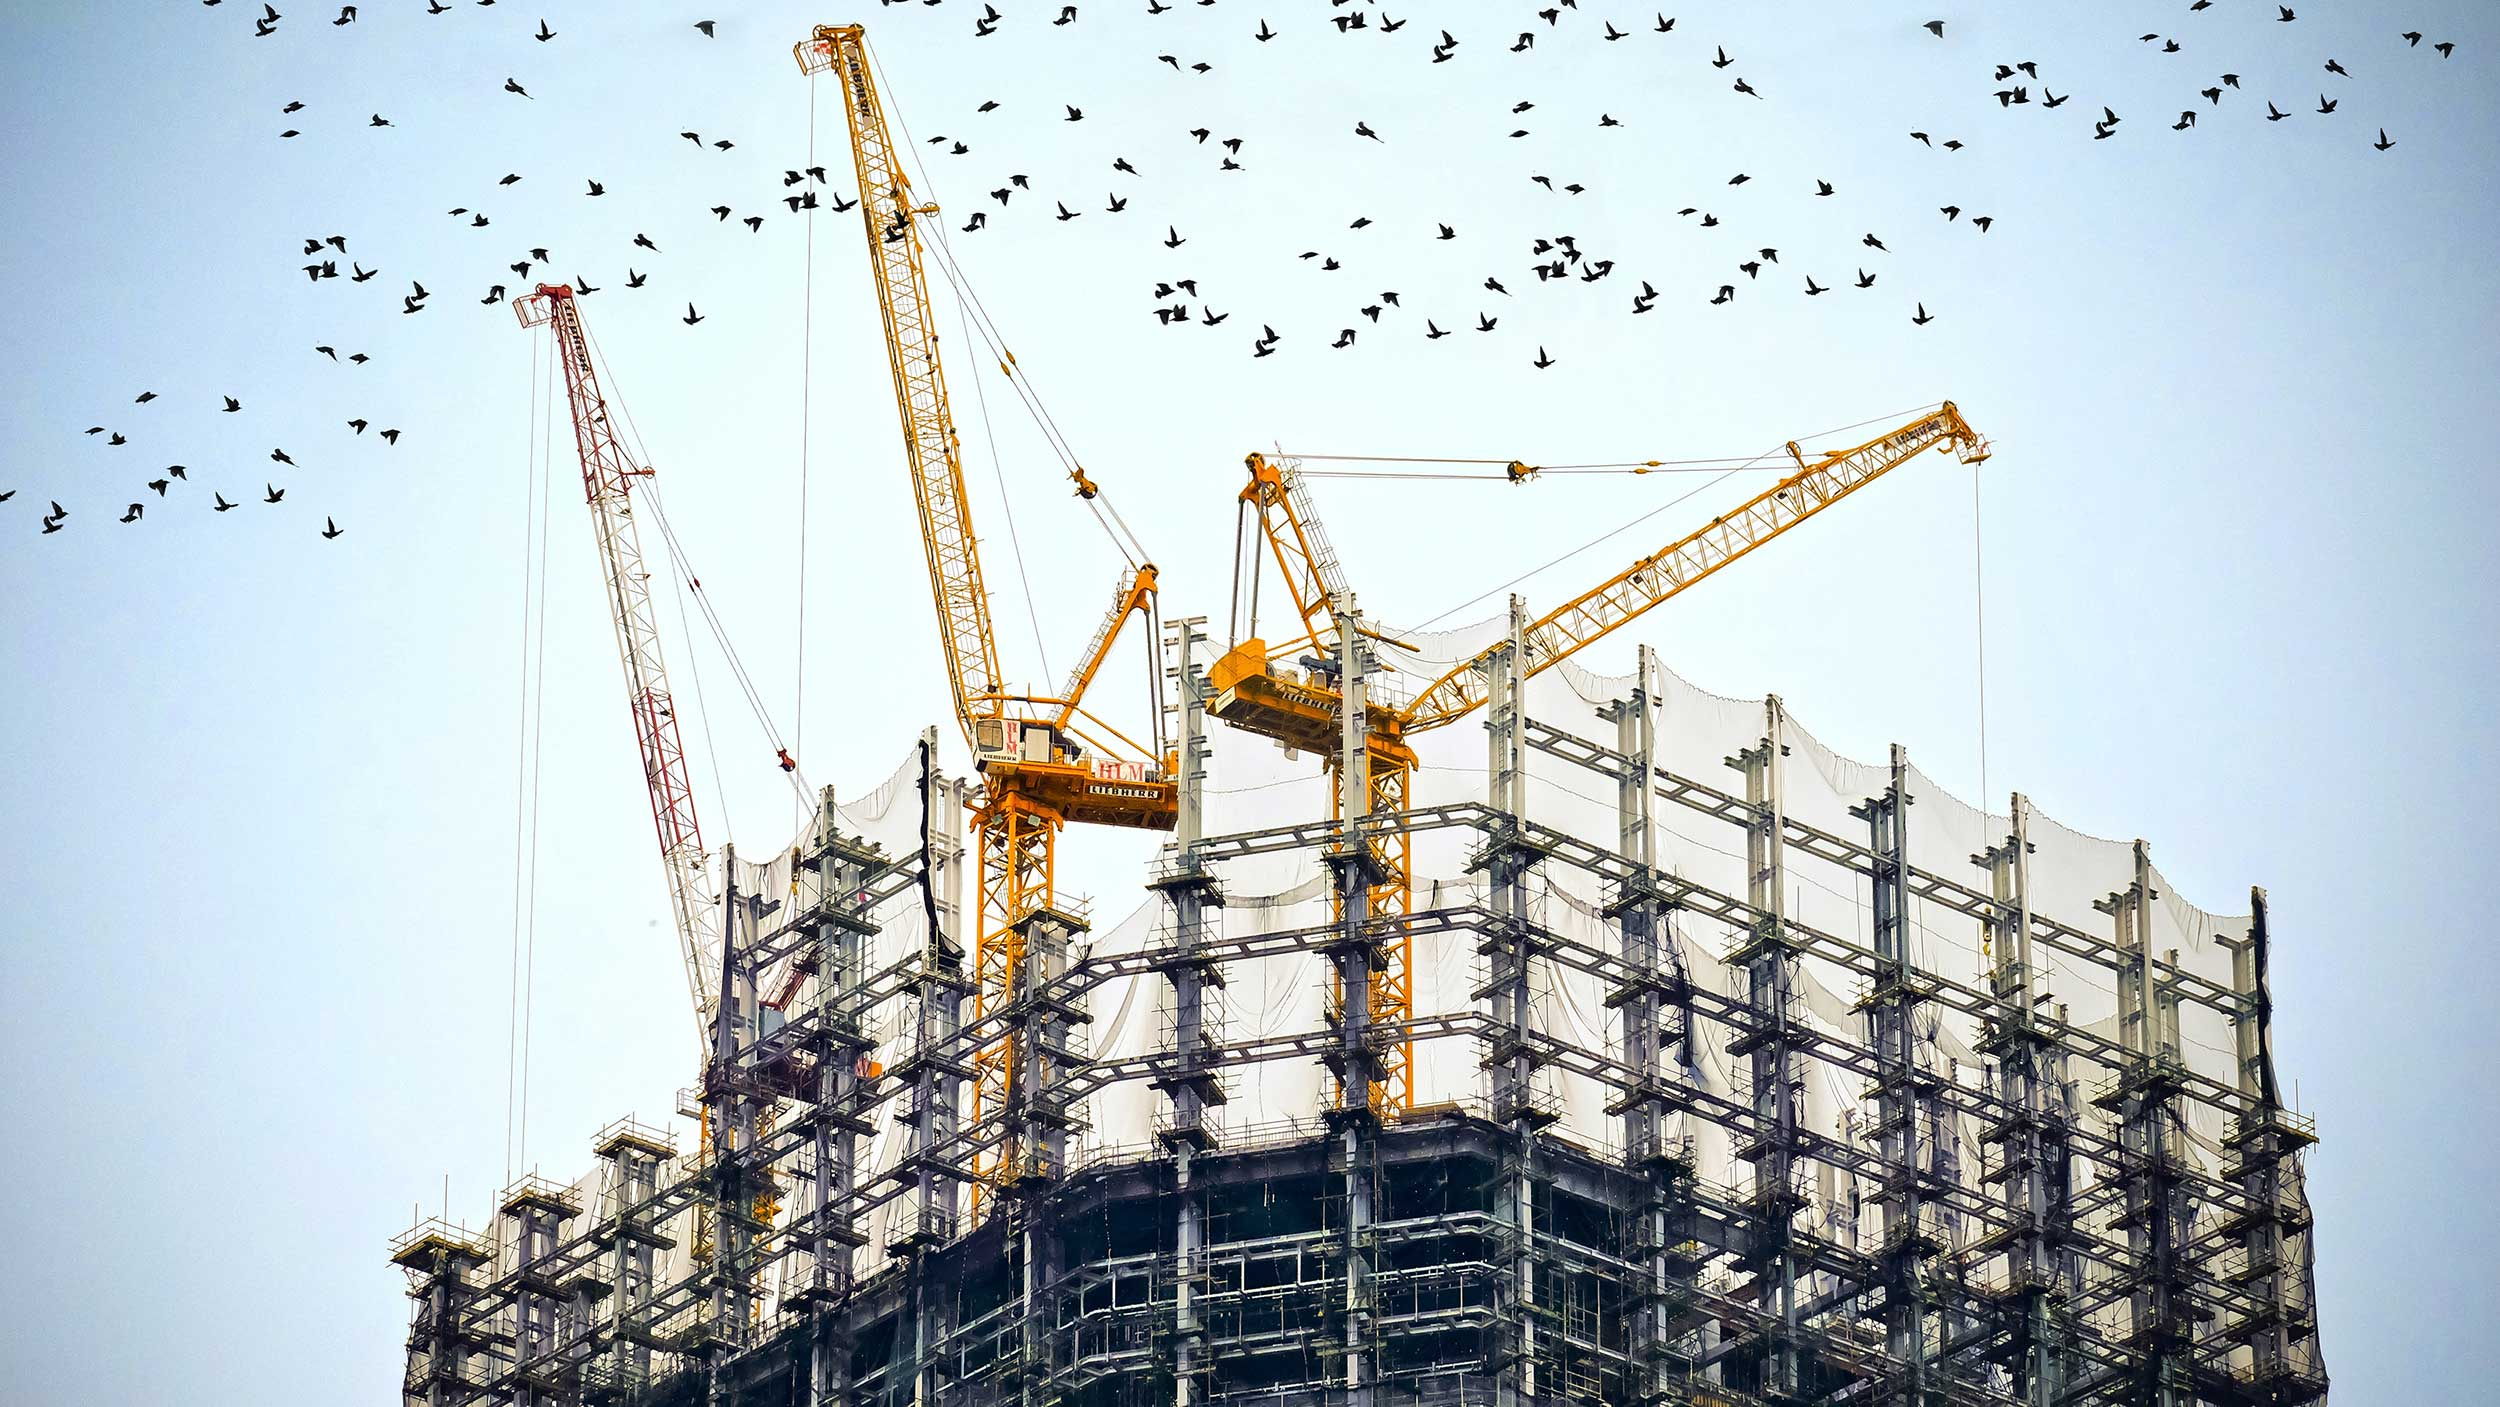 View of a construction site showing lots of sky